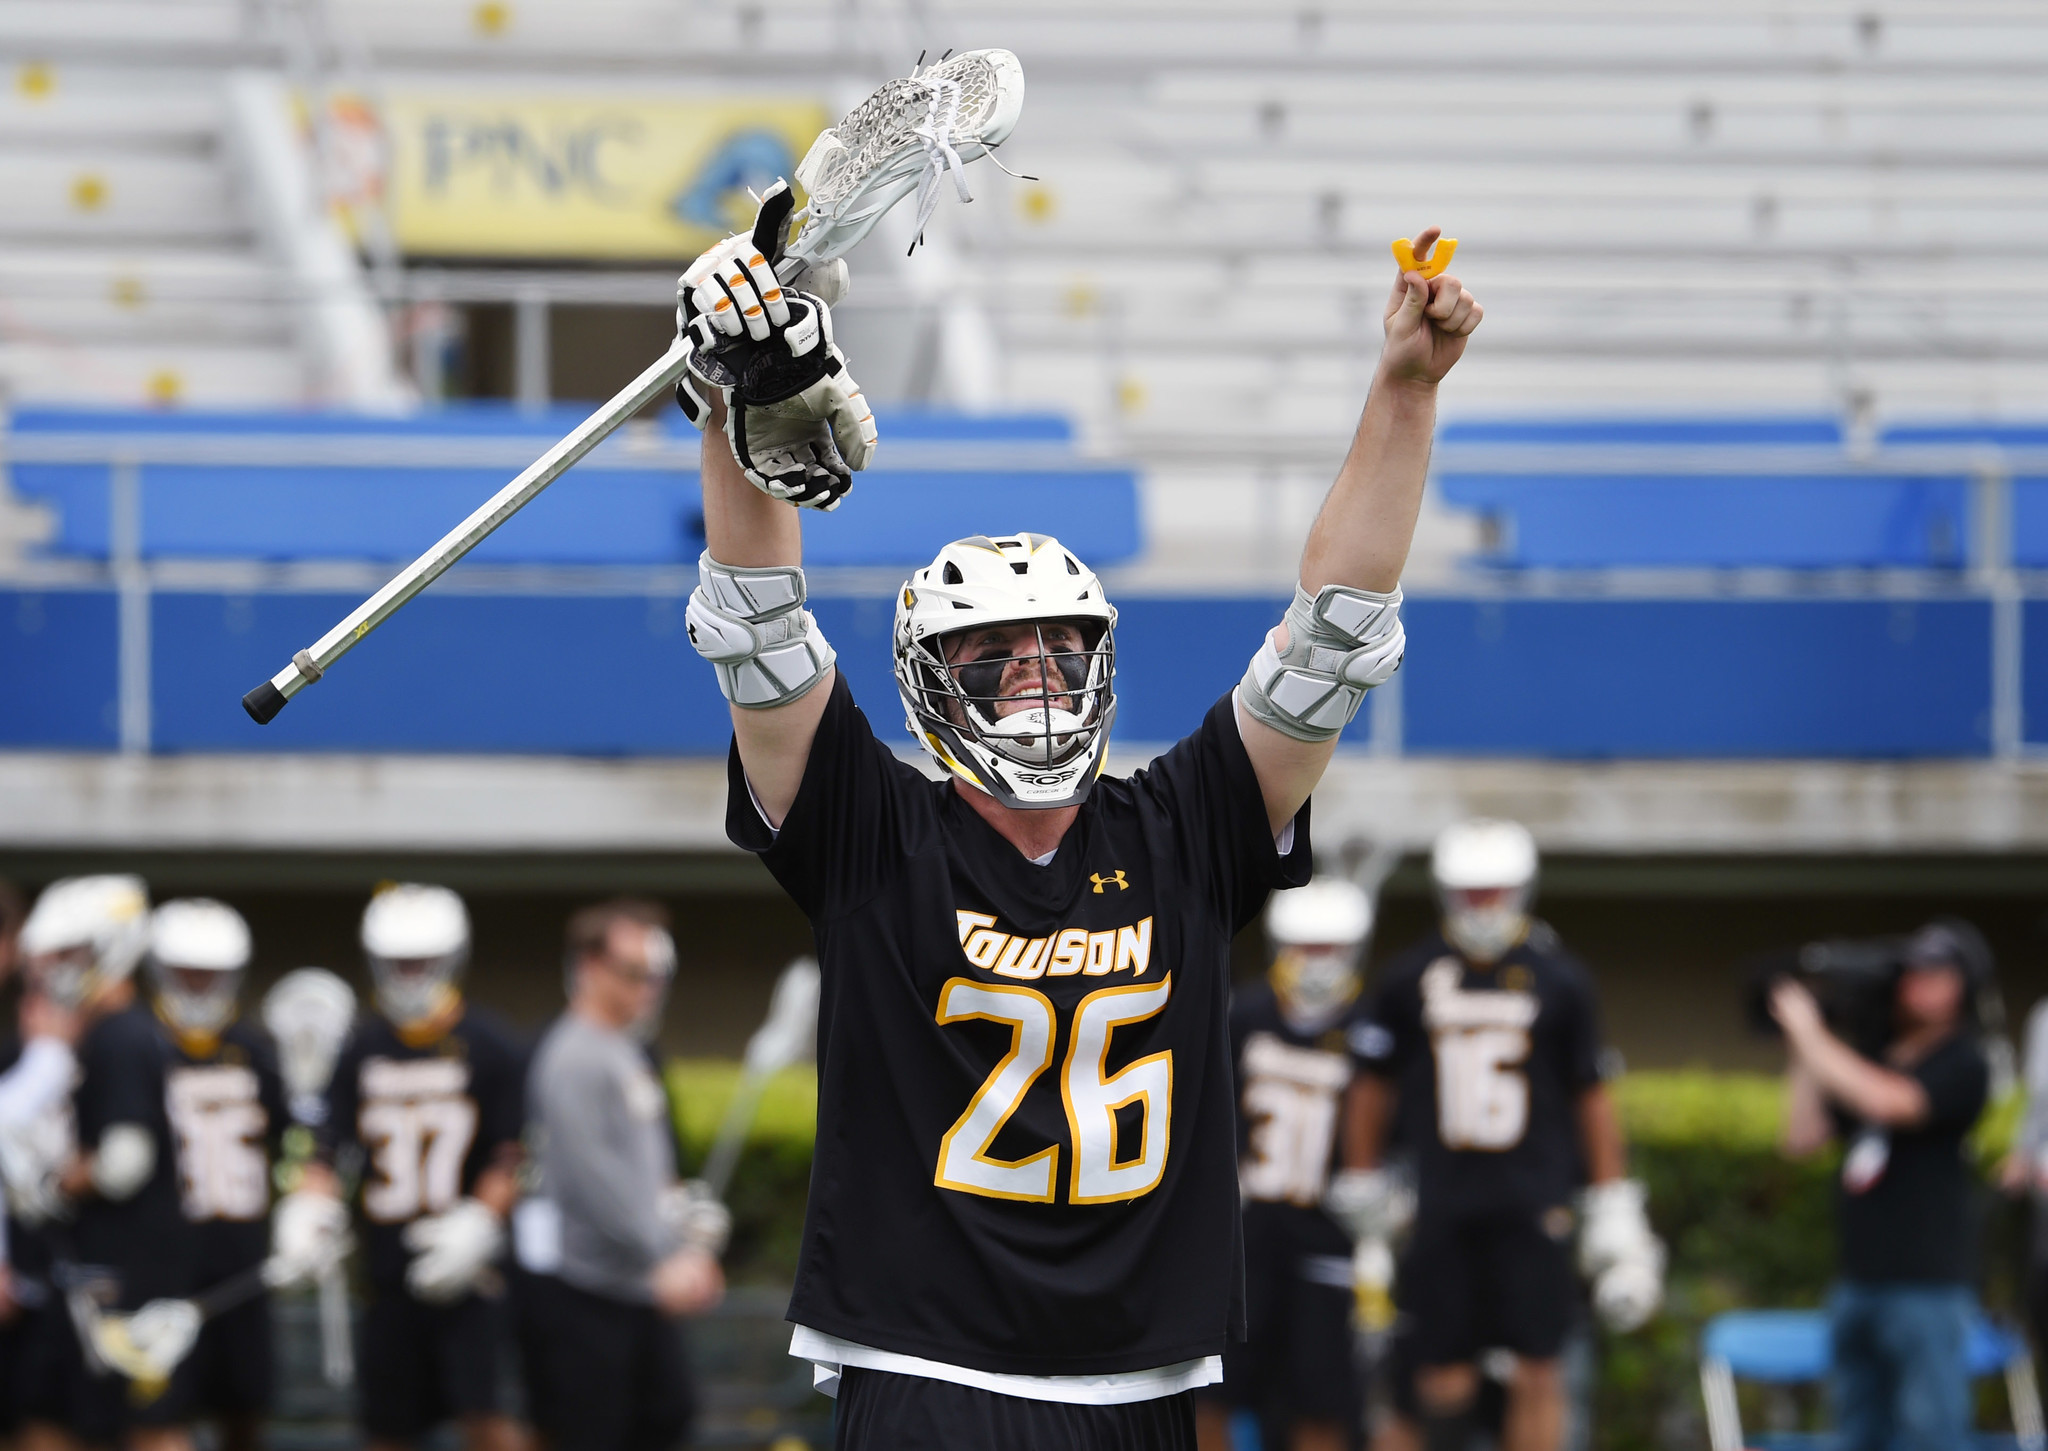 Towson tops No. 2 seed Syracuse, 10-7, reaches its first ...